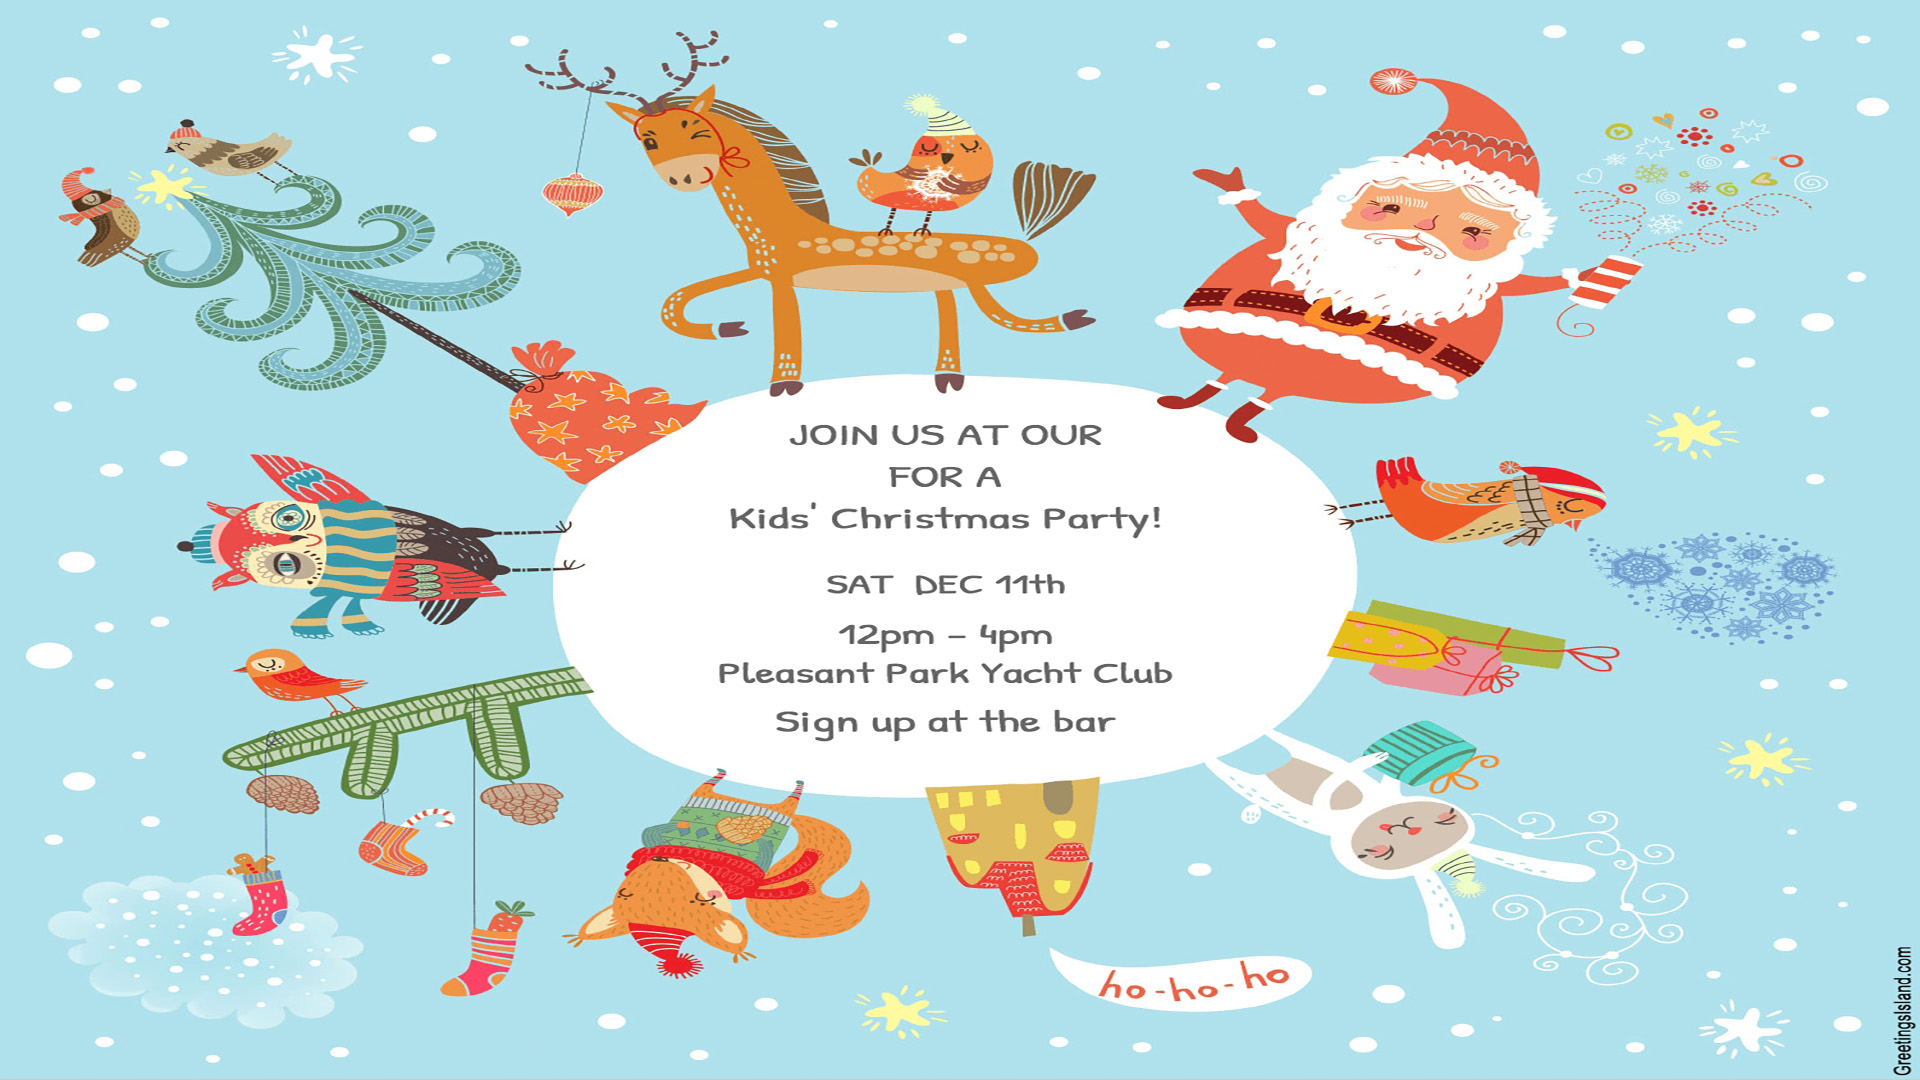 Kids Christmas Party Dec 11th Pleasant Park Yacht Club